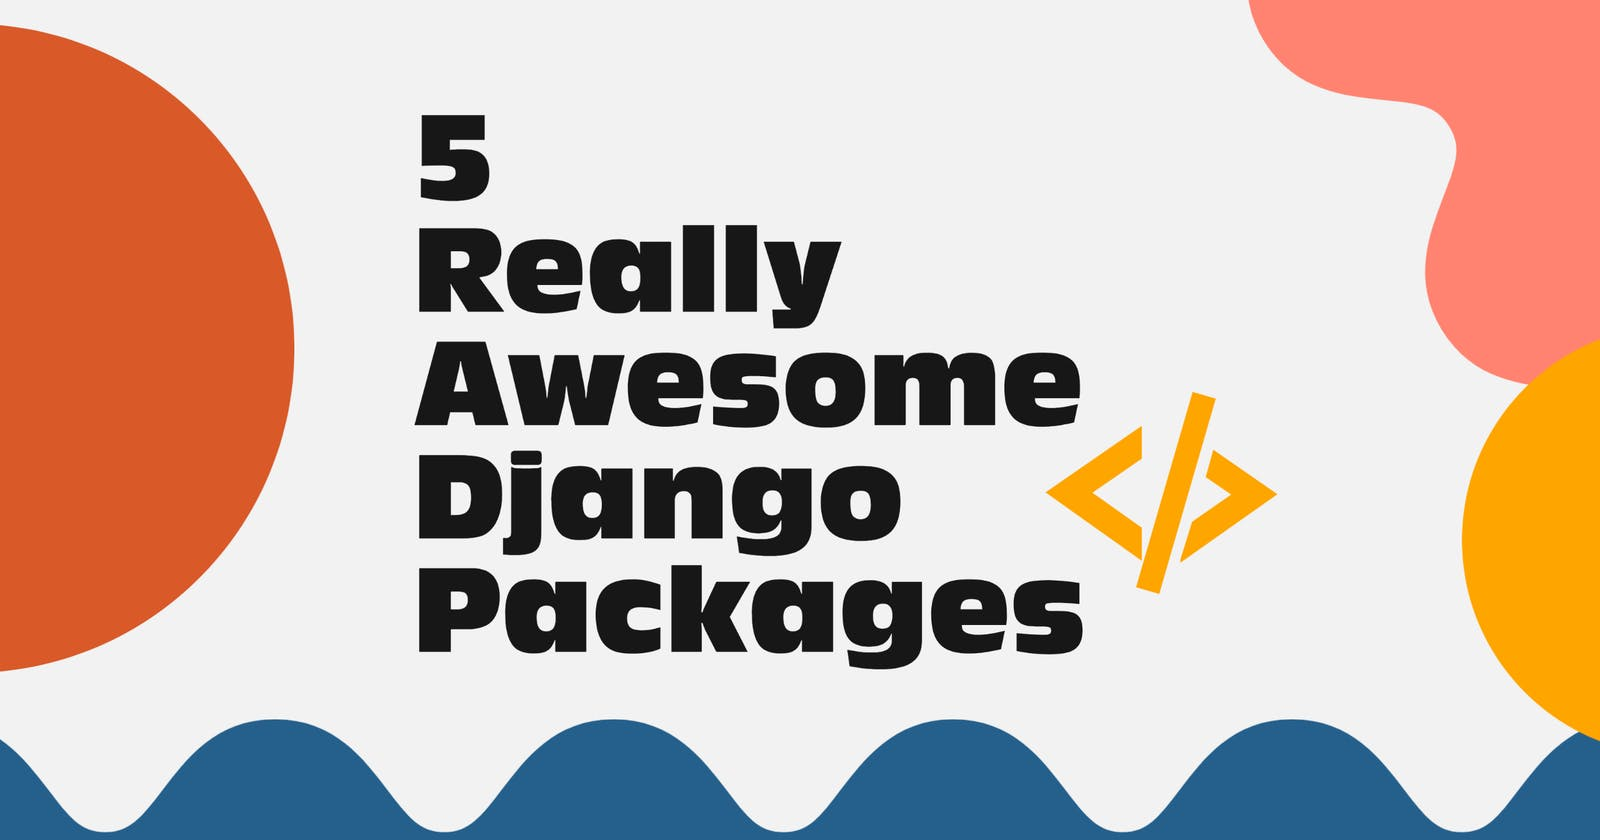 5 Really Awesome Django Packages